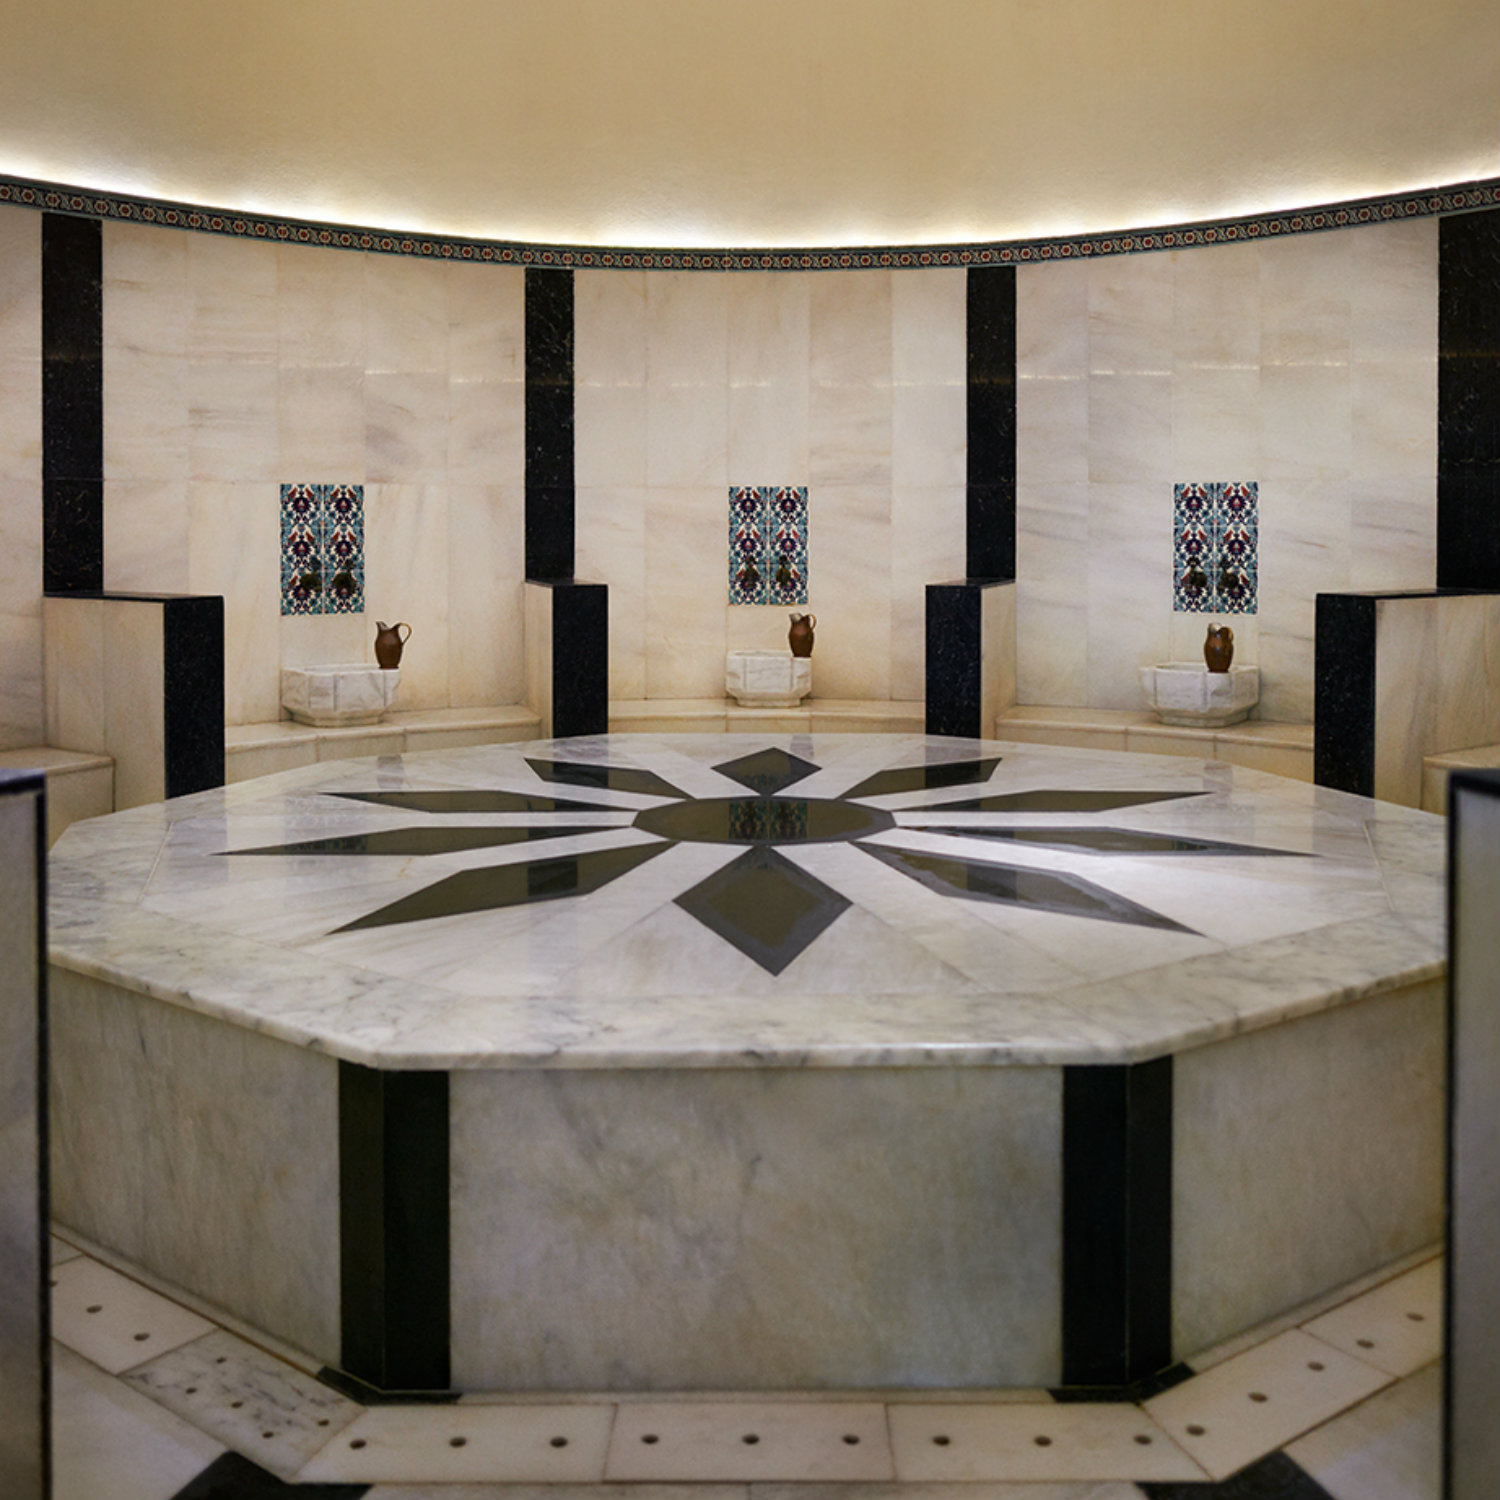 Hamam Bath: Wellness in the BLUE Spa